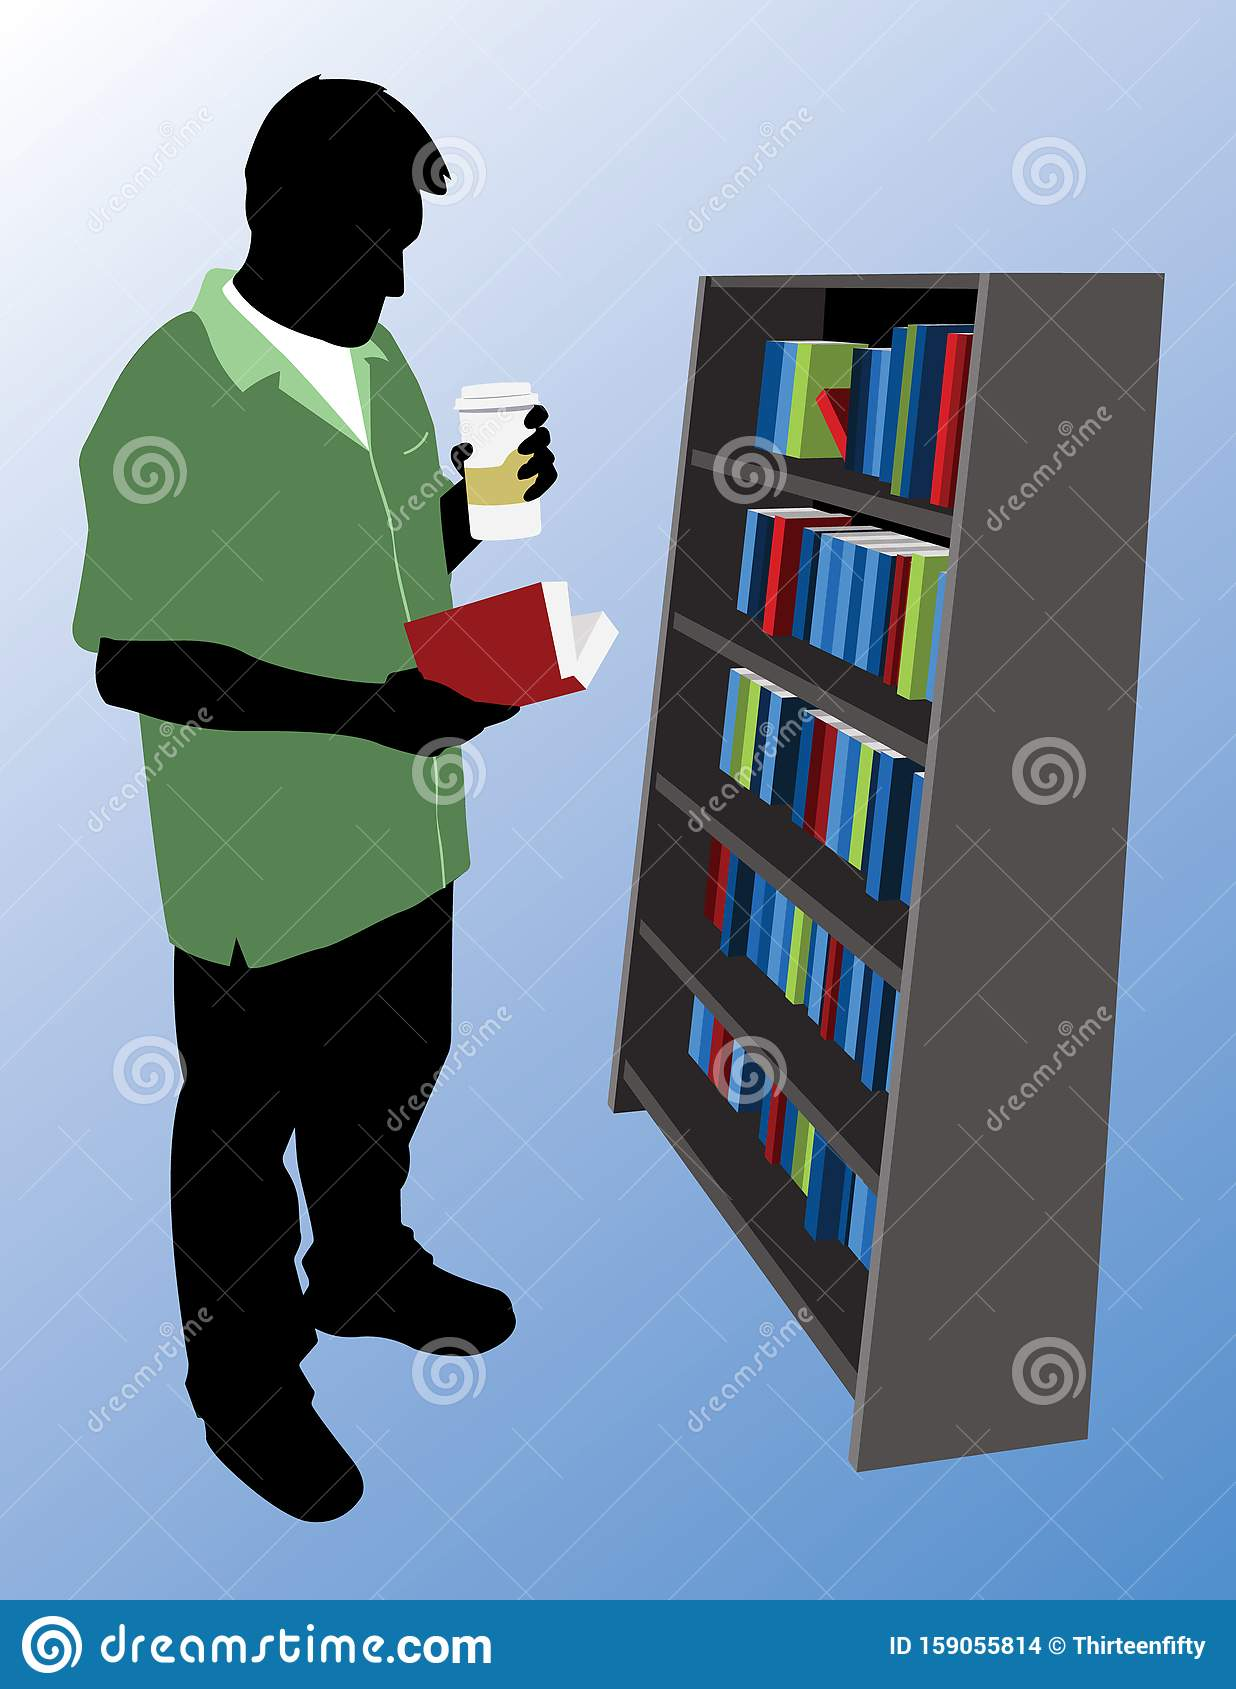 Man in a Green Shirt Reading a Book while Holding a Hot Beverage Cartoon Vector Graphic Illustration